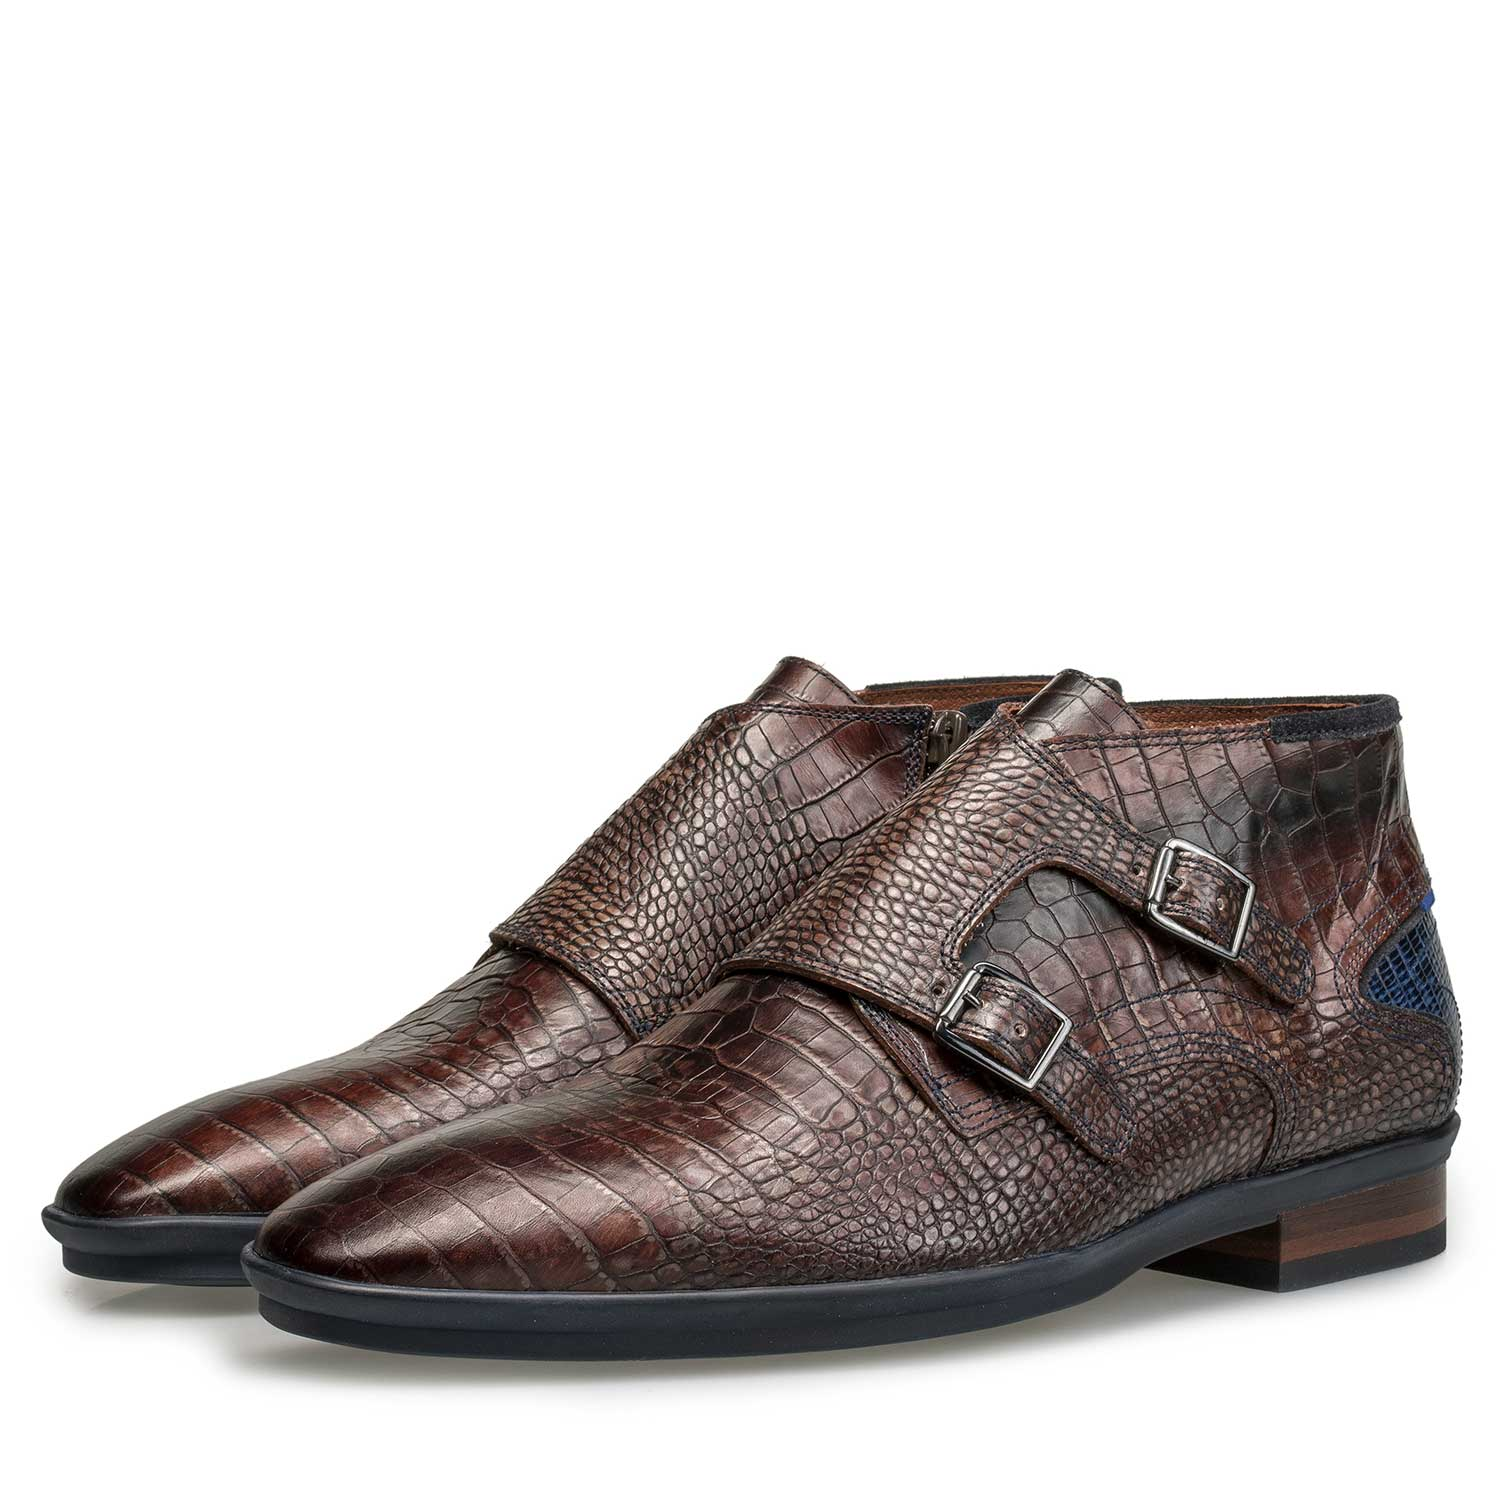 10137/14 - Dark brown buckled shoe with croco print